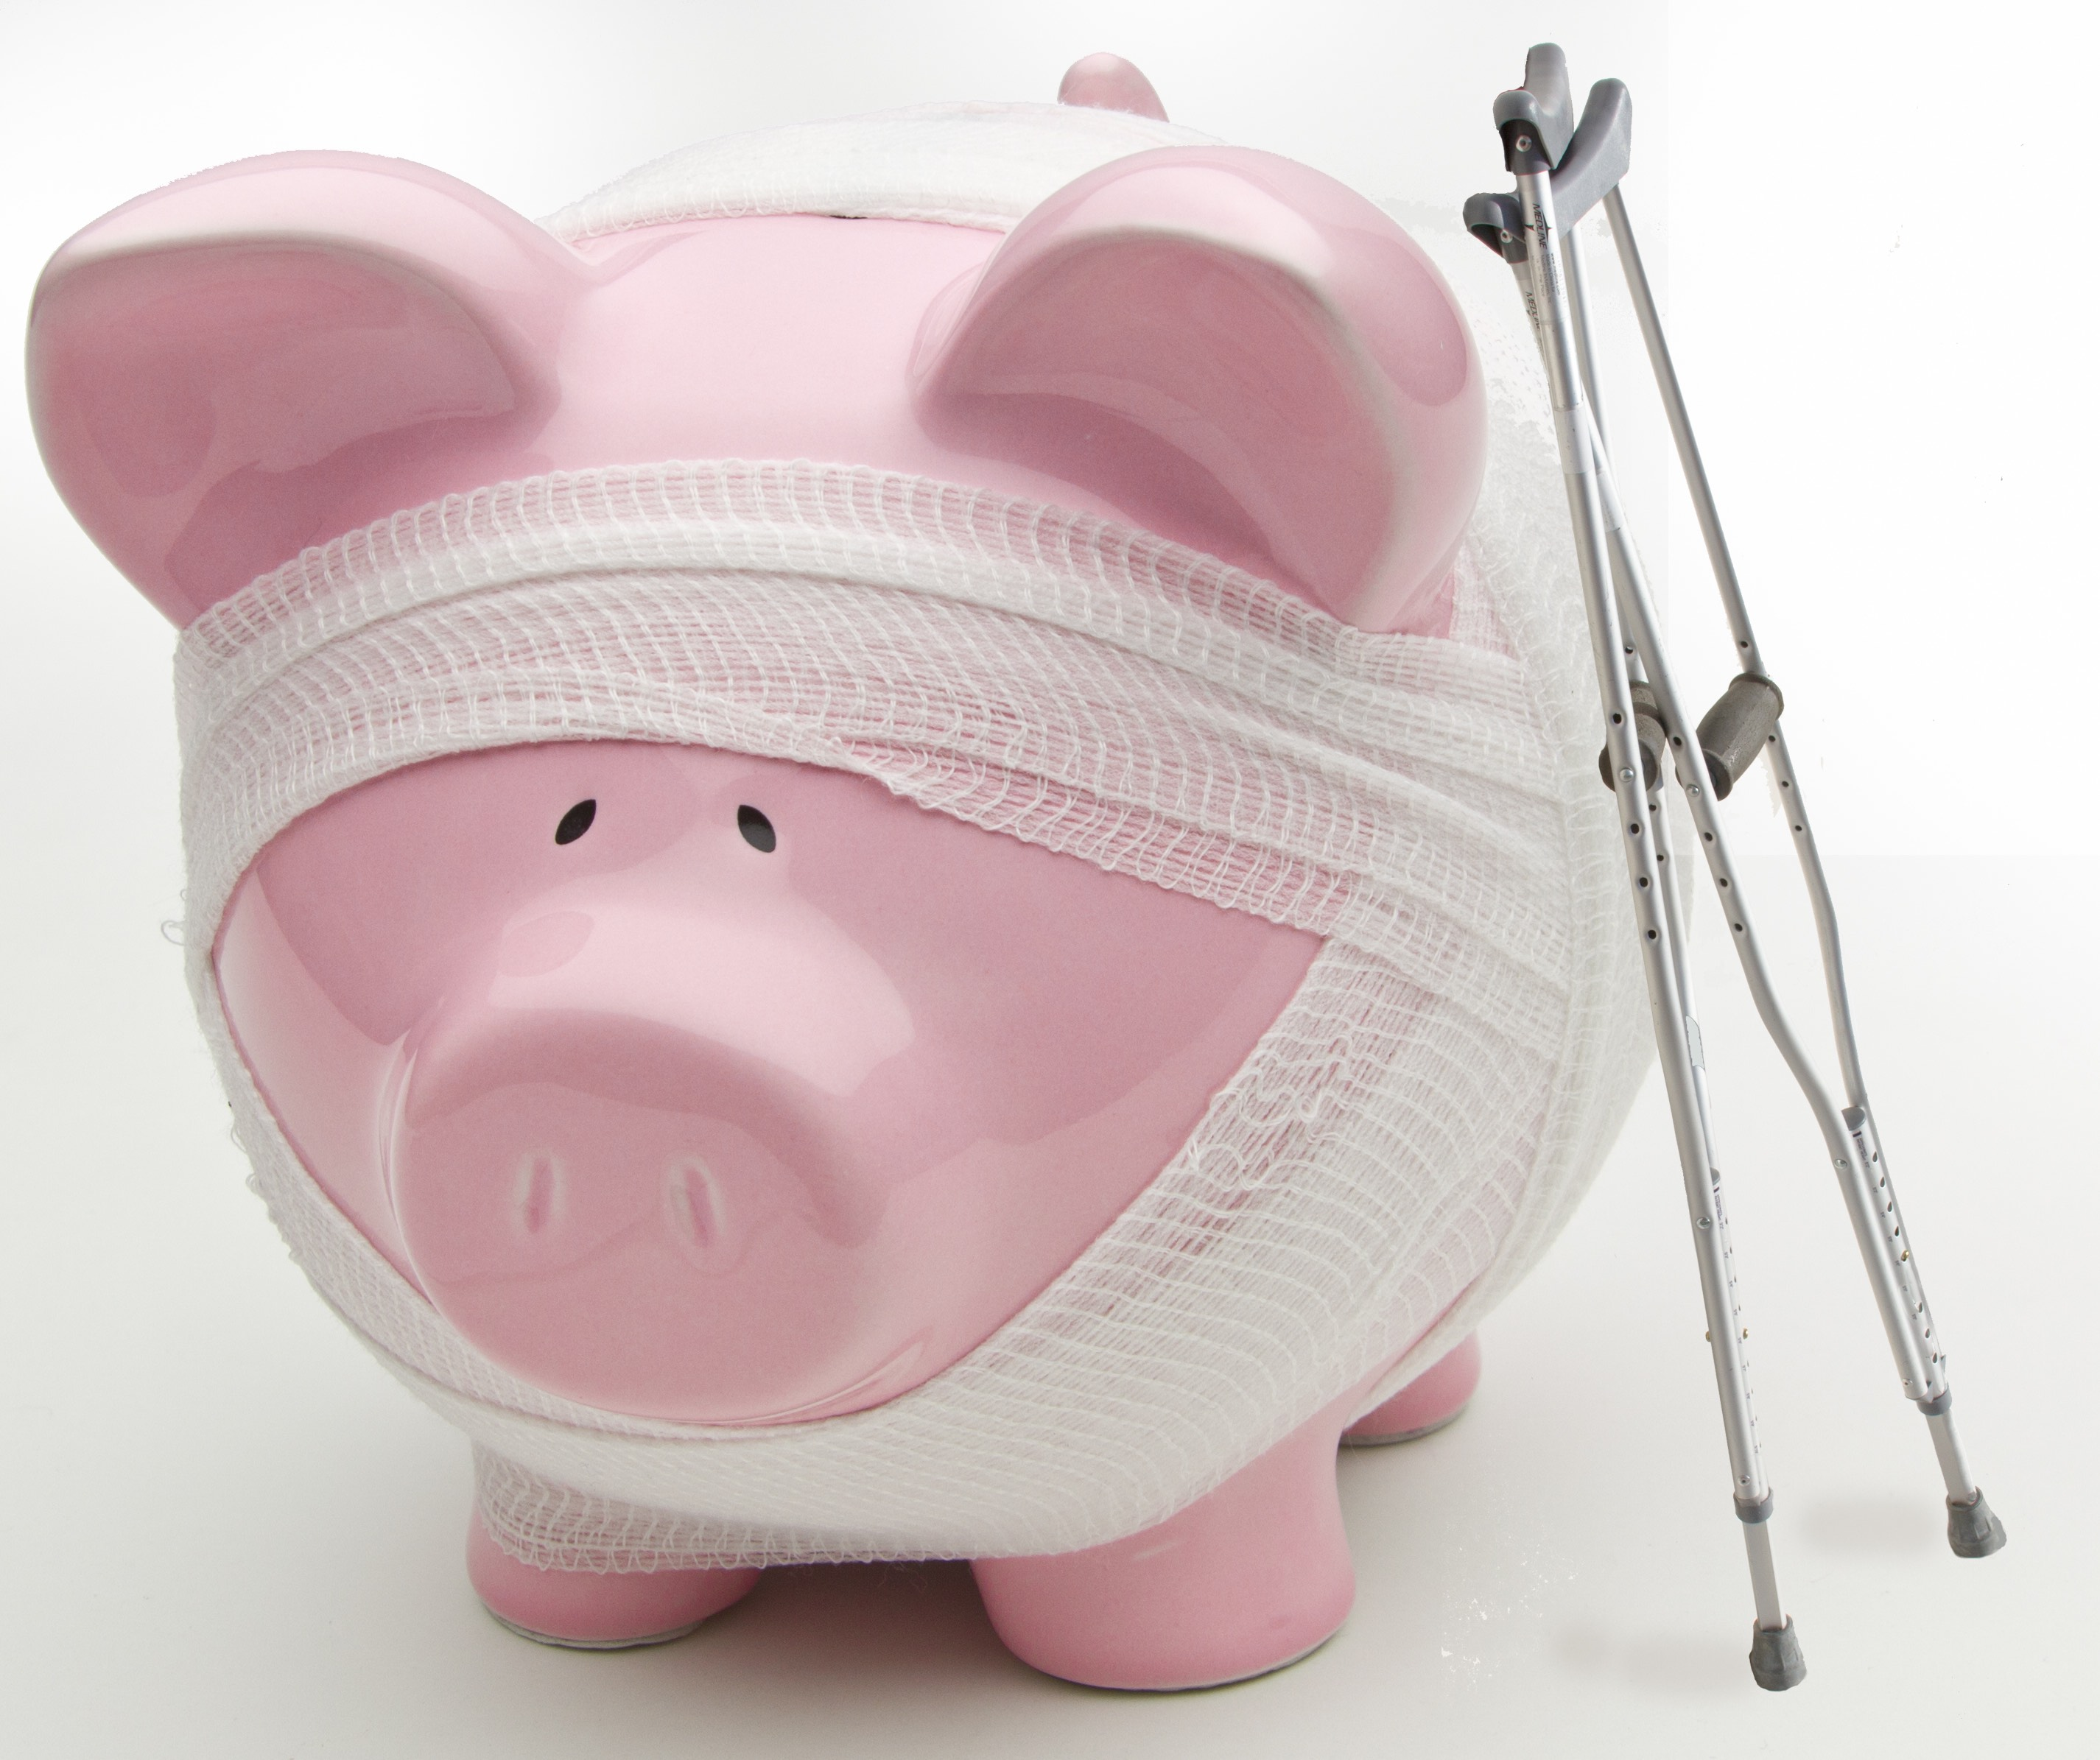 Image of injured piggy bank